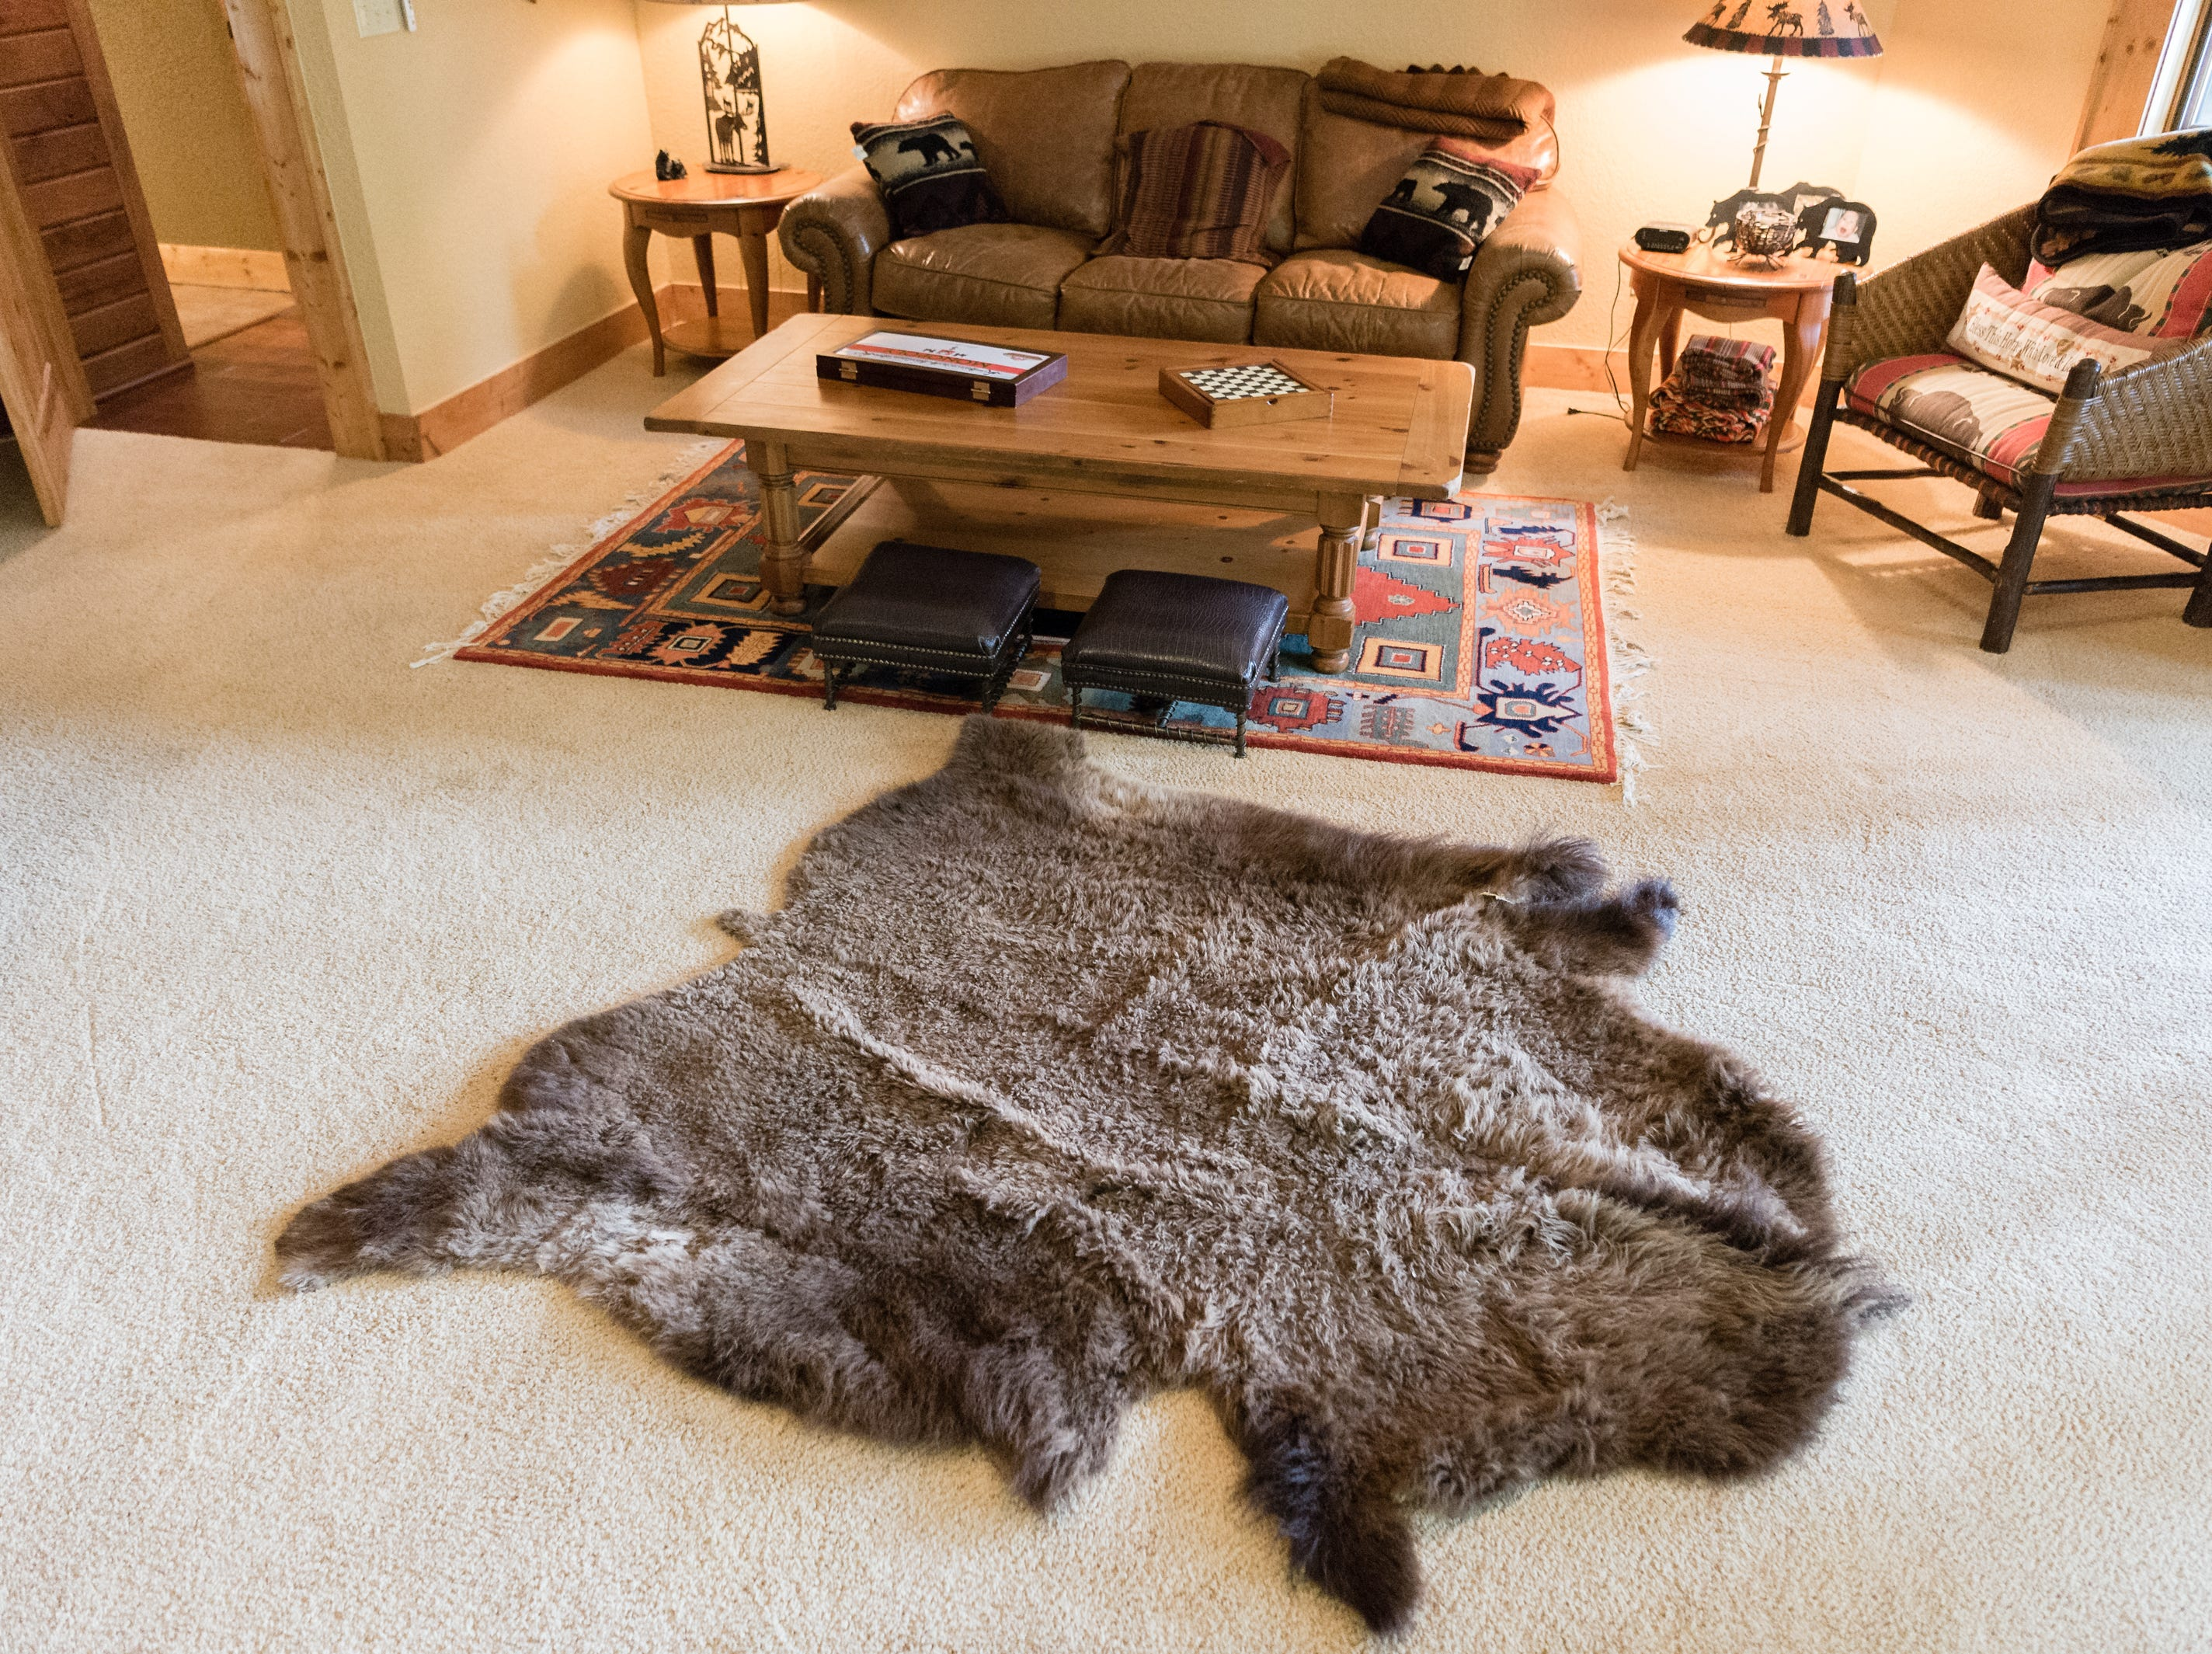 An animal hide in a room on the basement level of Dan and Belle Fangmeyer's log cabin in Waynesville.